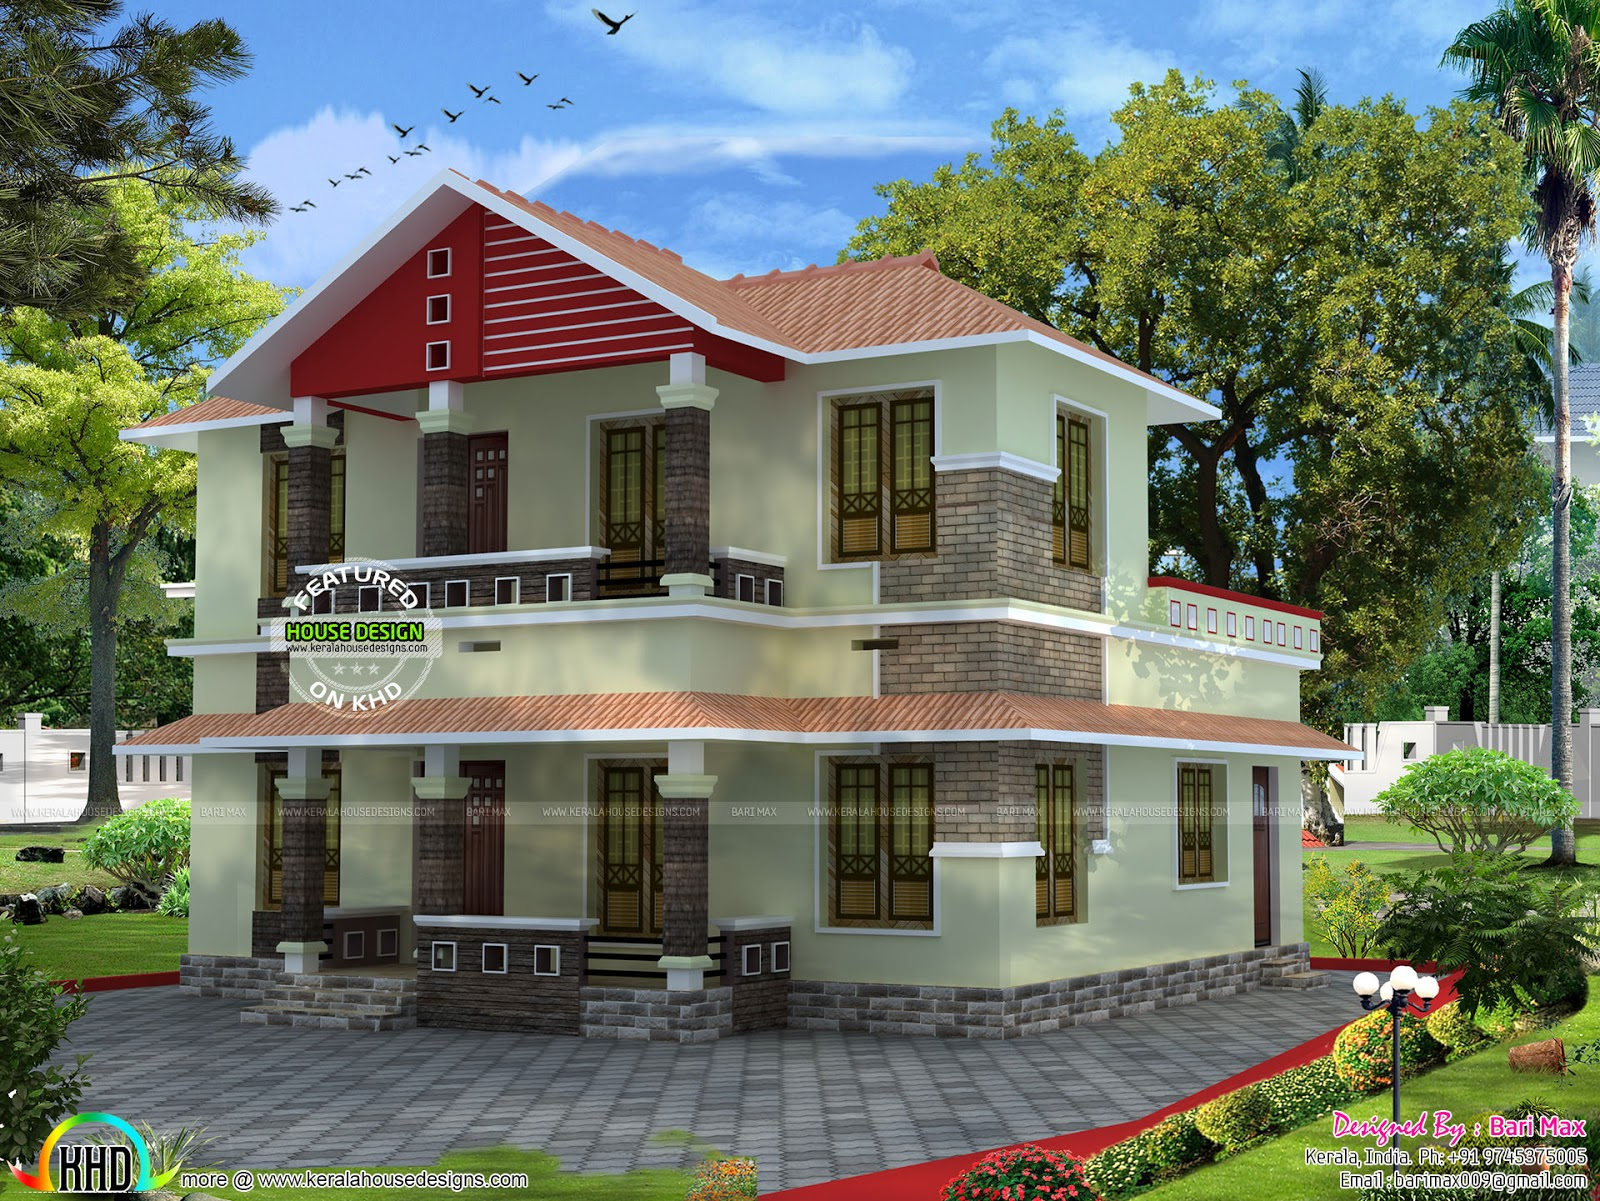 Low Budget Slop Roof Home Kerala Home Design And Floor Plans